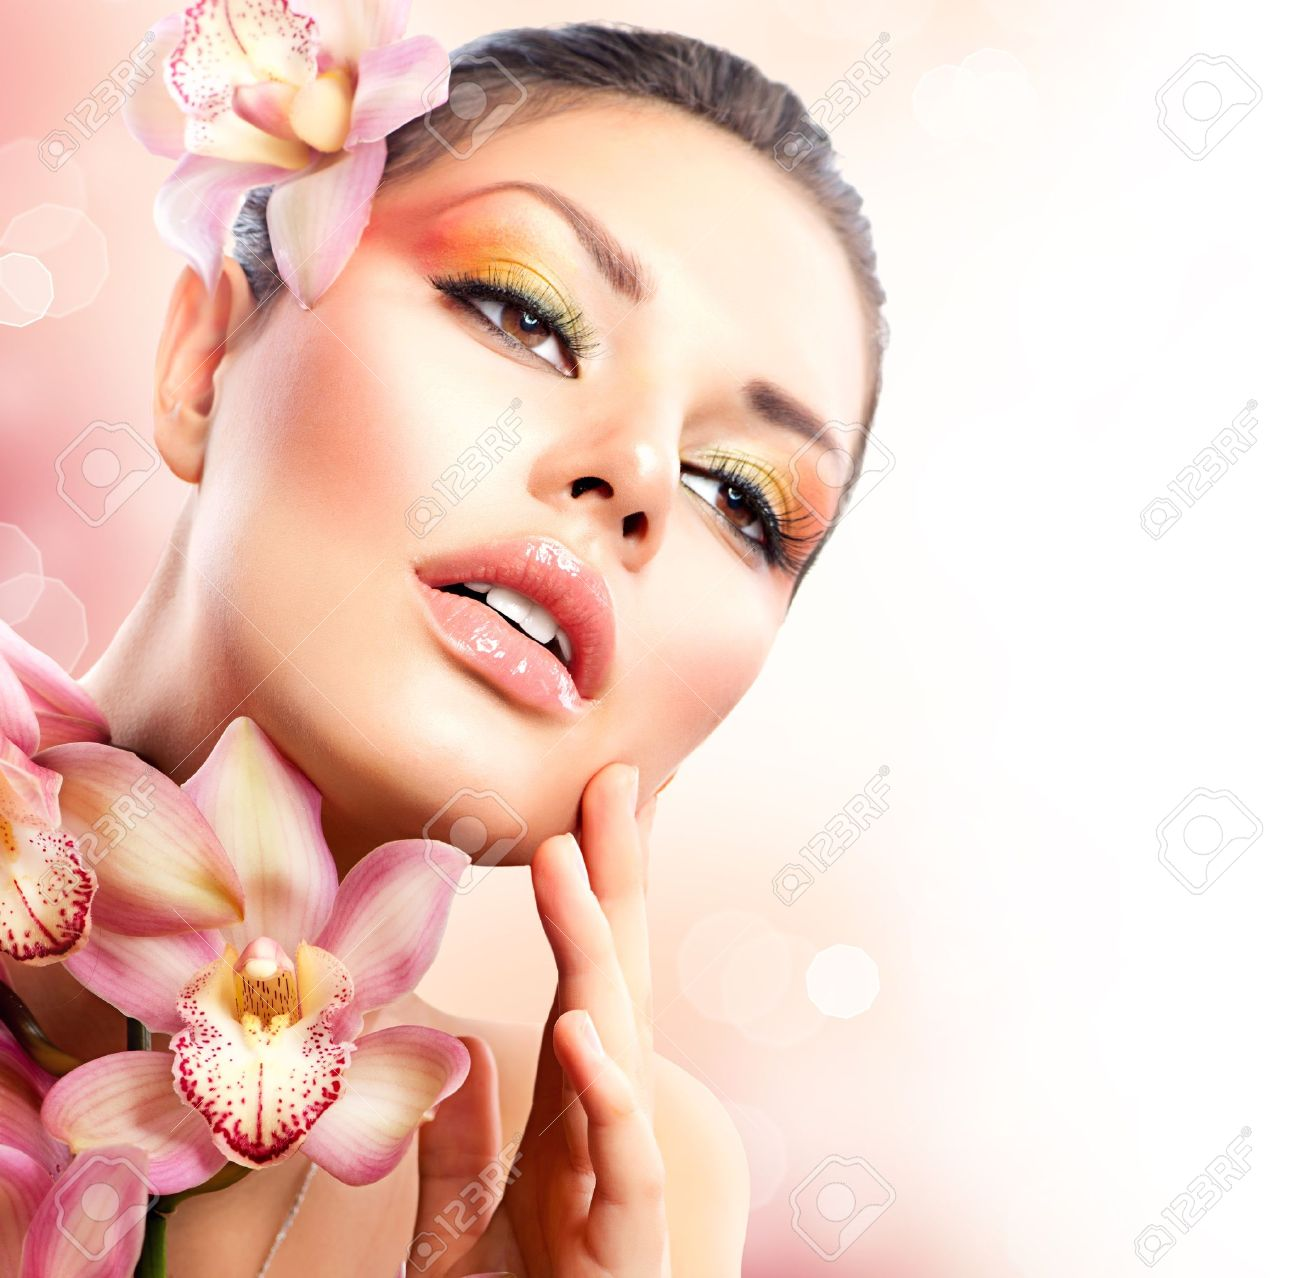 Beautiful Spa Girl With Orchid Flowers Touching her Face Stock Photo - 17383870